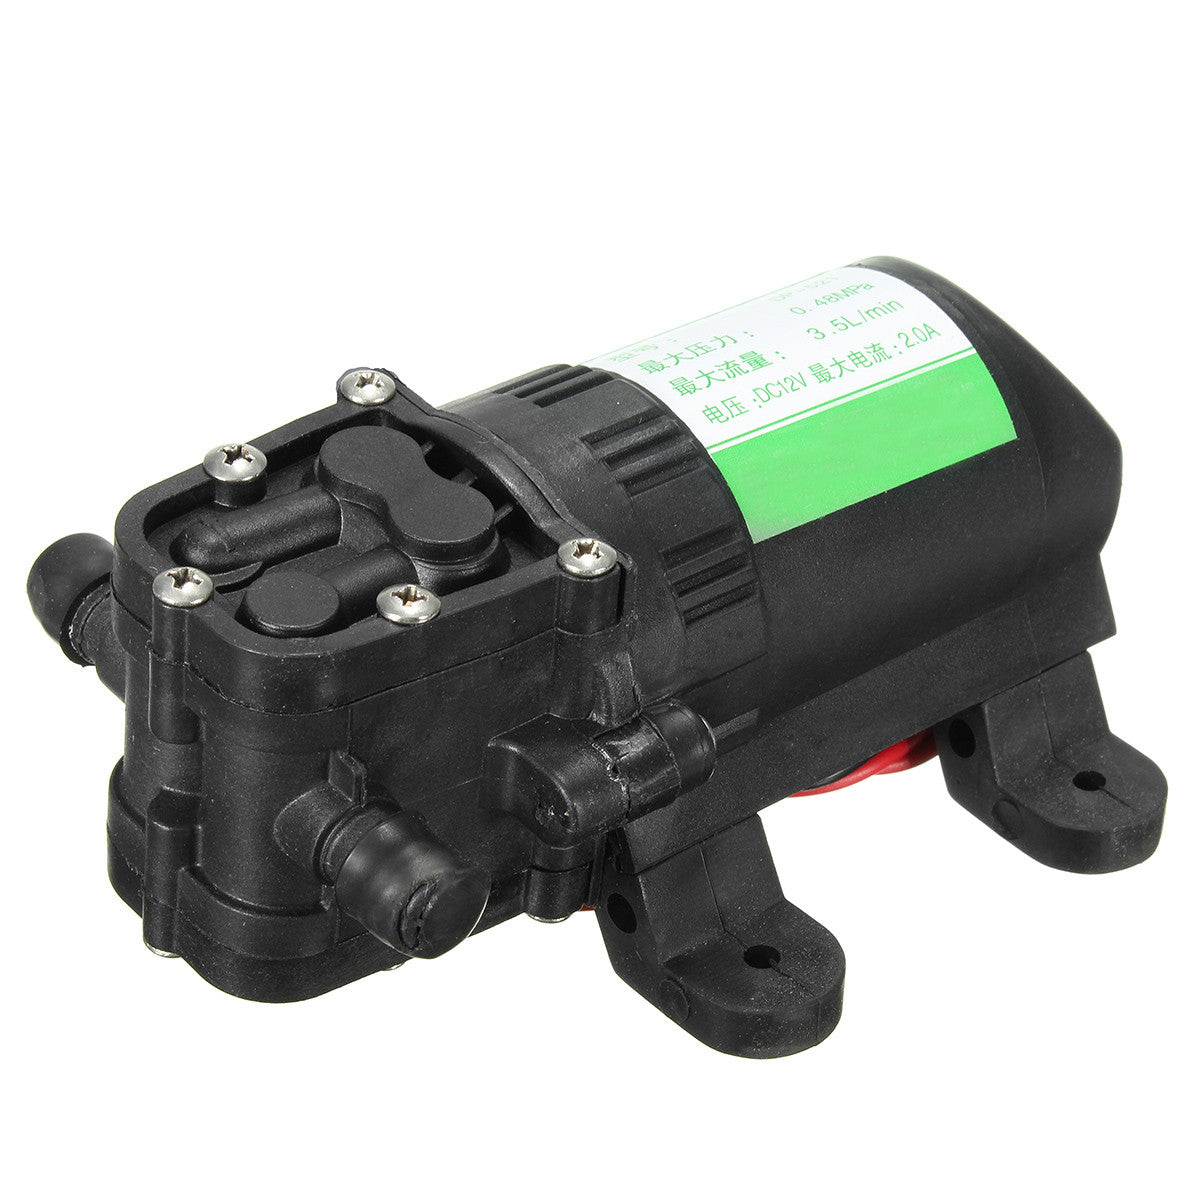 12V DC 12.5cm Water Pump for Home Camper Caravan Marine